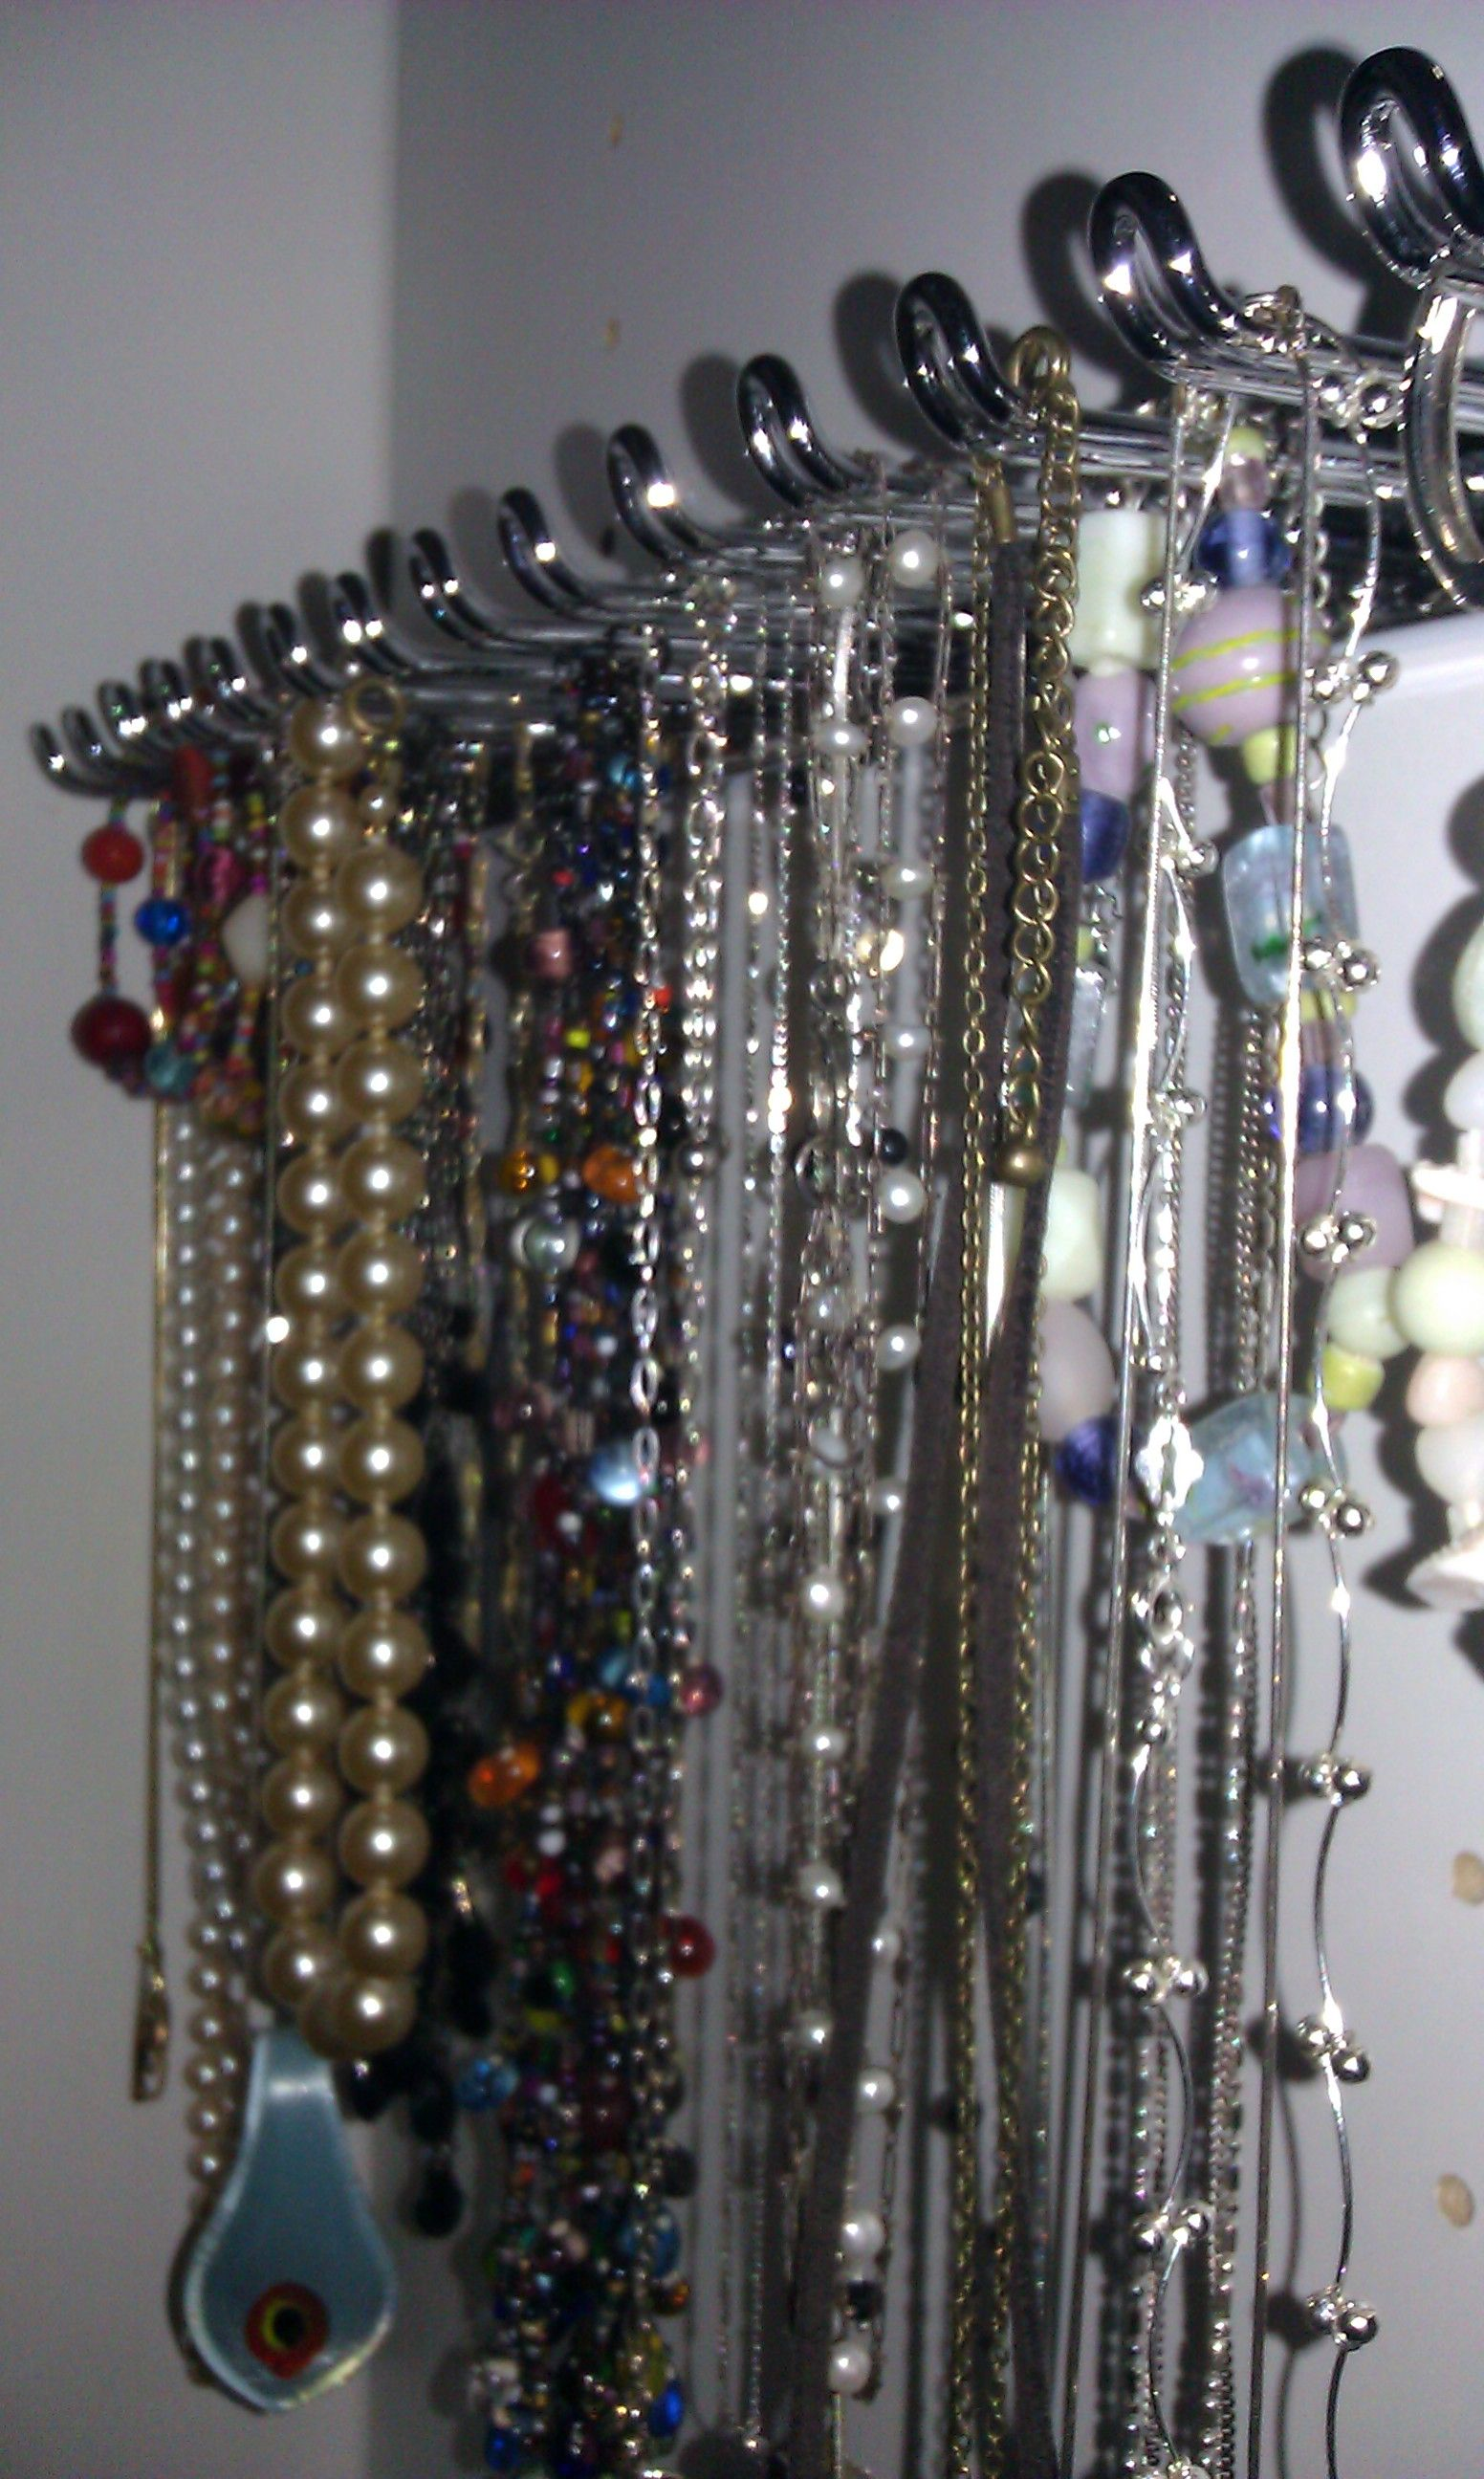 Belt rack used to store necklaces